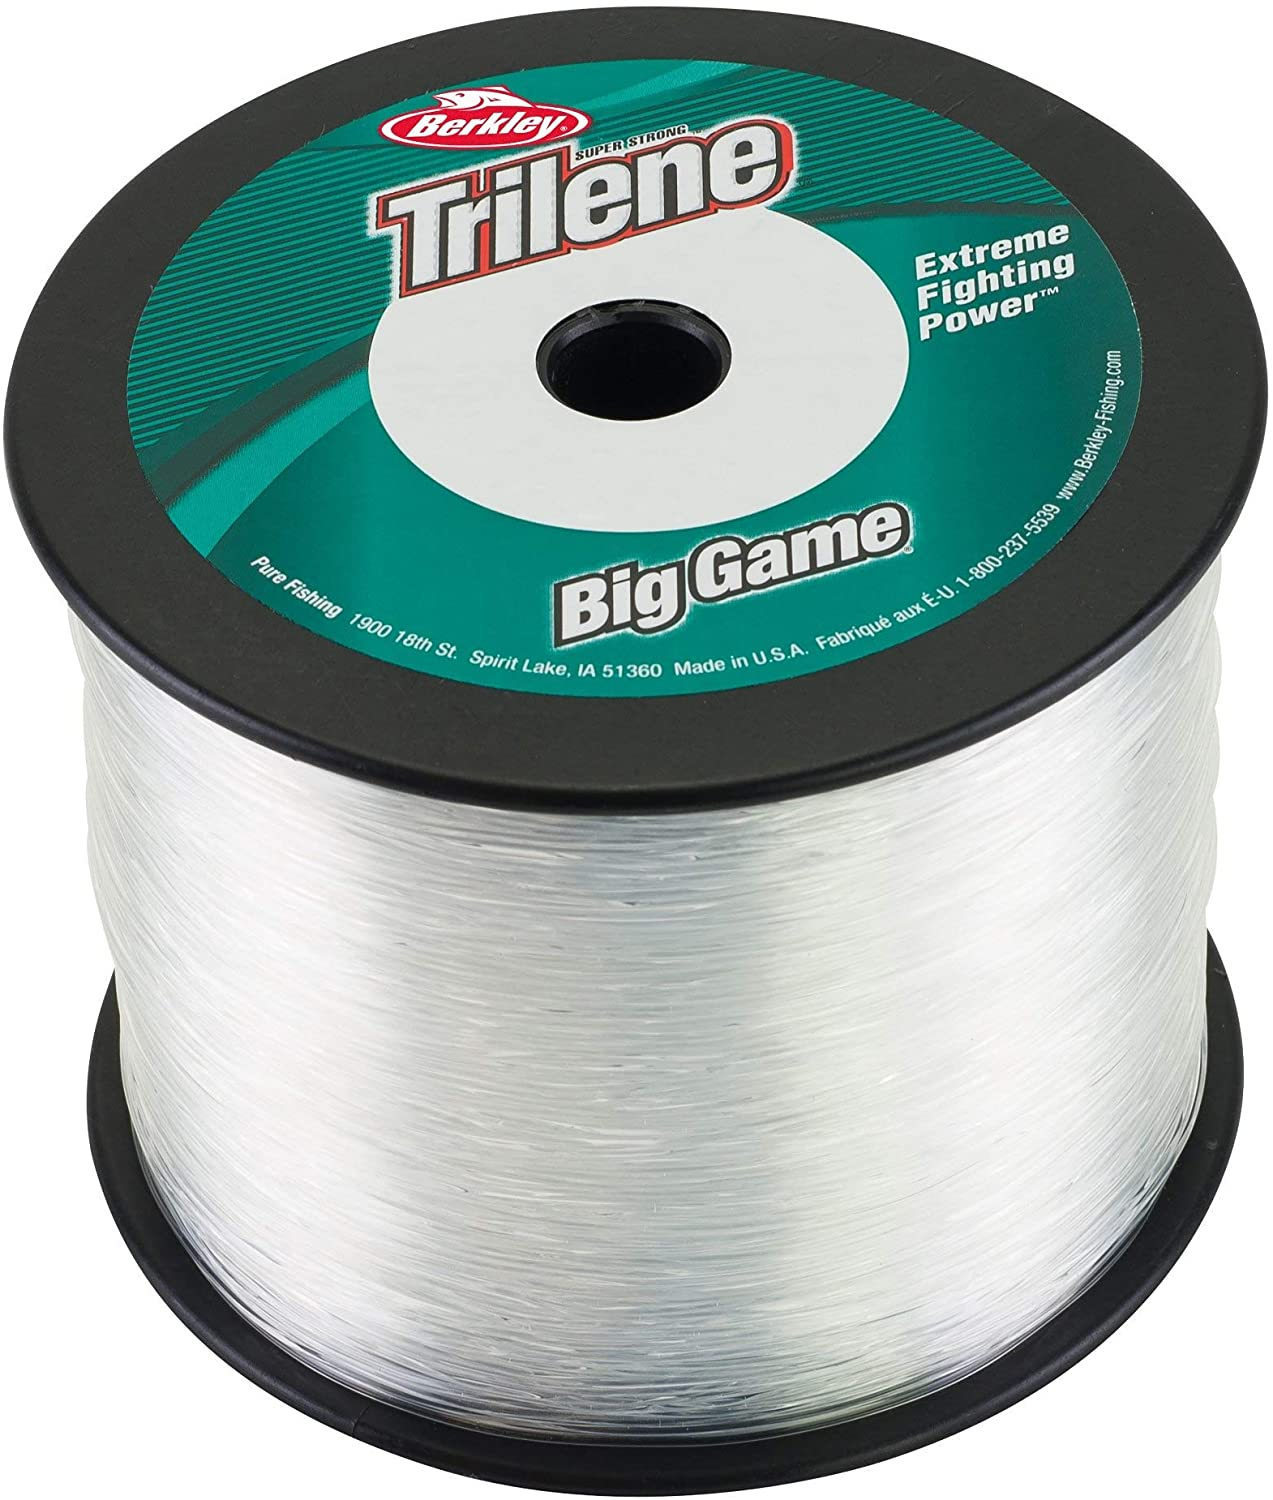 Berkeley Triline Big Game Monofilament Custom Spool